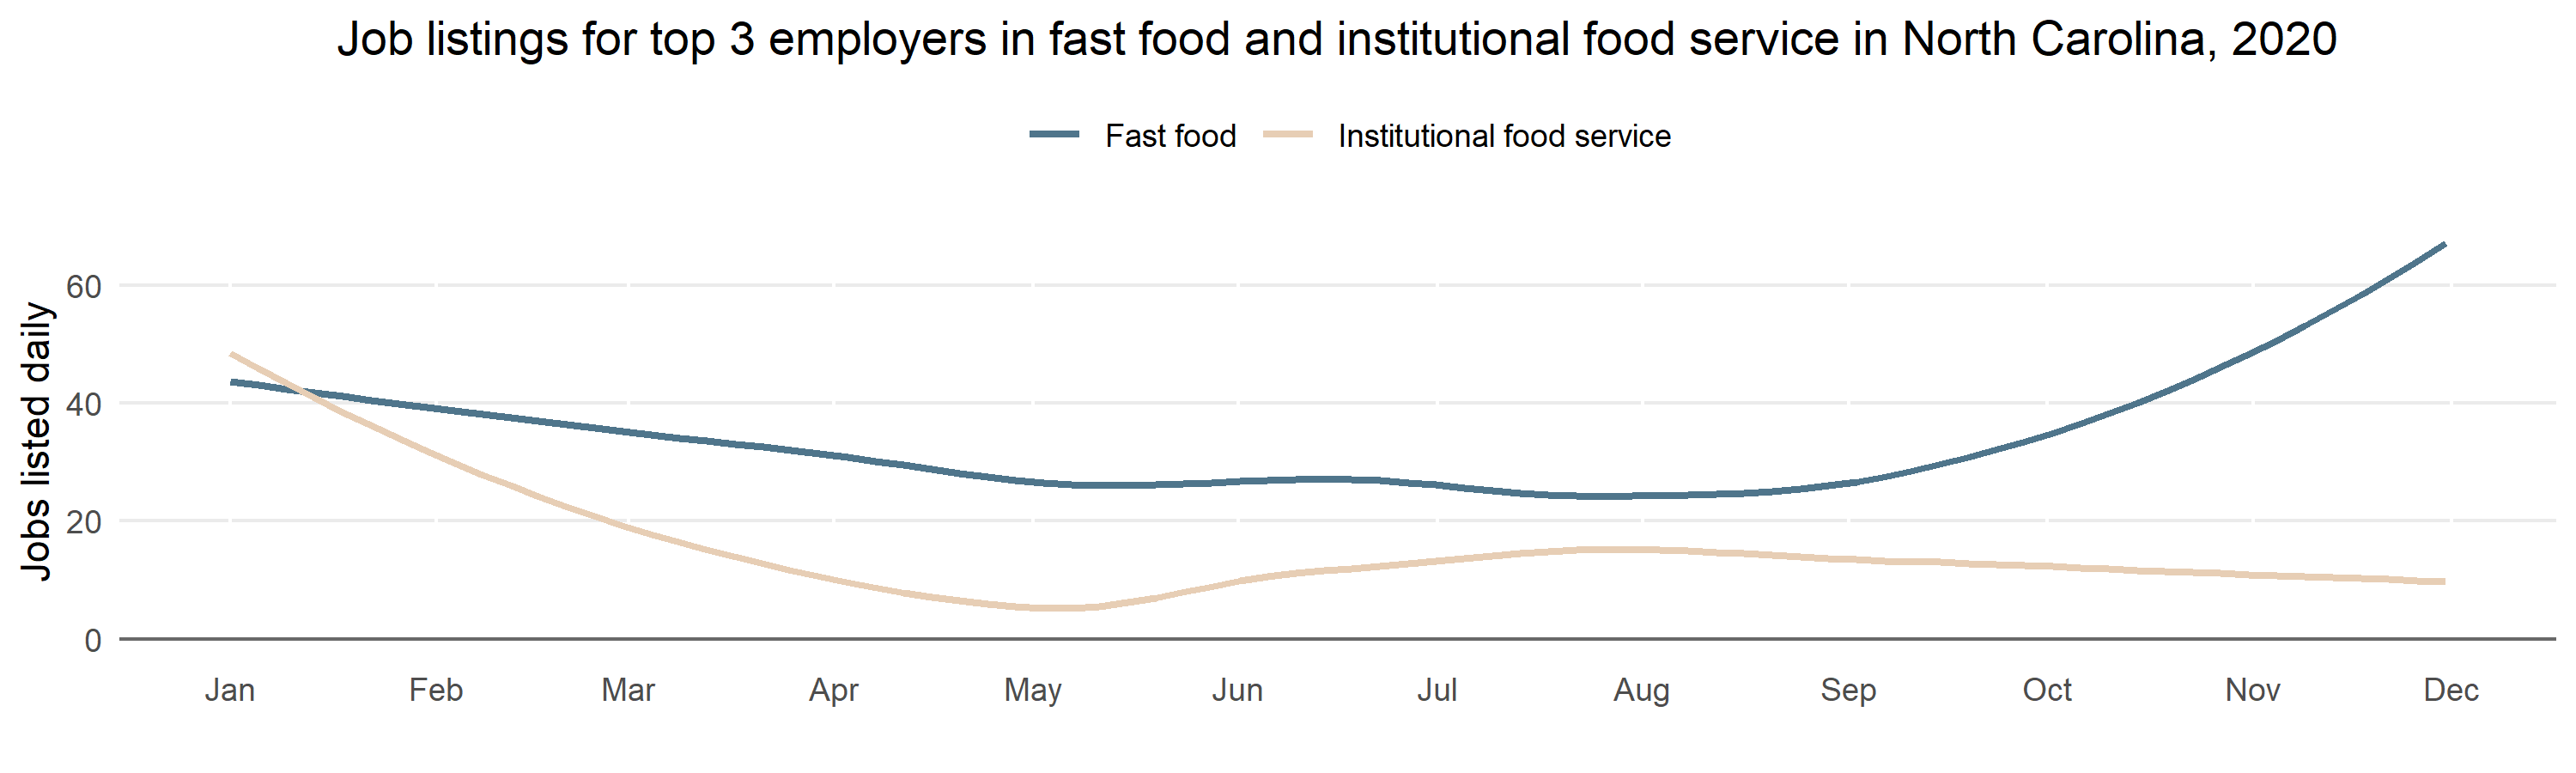 "A two-line line chart titled ""Job listings for top 3 employers in fast food and institutional food service.""  The lines represent fast food job postings and institutional food service job postings.  The y-axis represents total daily jobs, ranging from 0 to 60, and the x-axis represents the date, ranging from January 2020 to October 2020.  The fast food line trends downwards, but begins a drastic rise in October 2020. The institutional food service line crashes steeply in January 2020, and only makes a modest recovery before trending downwards again in August 2020."